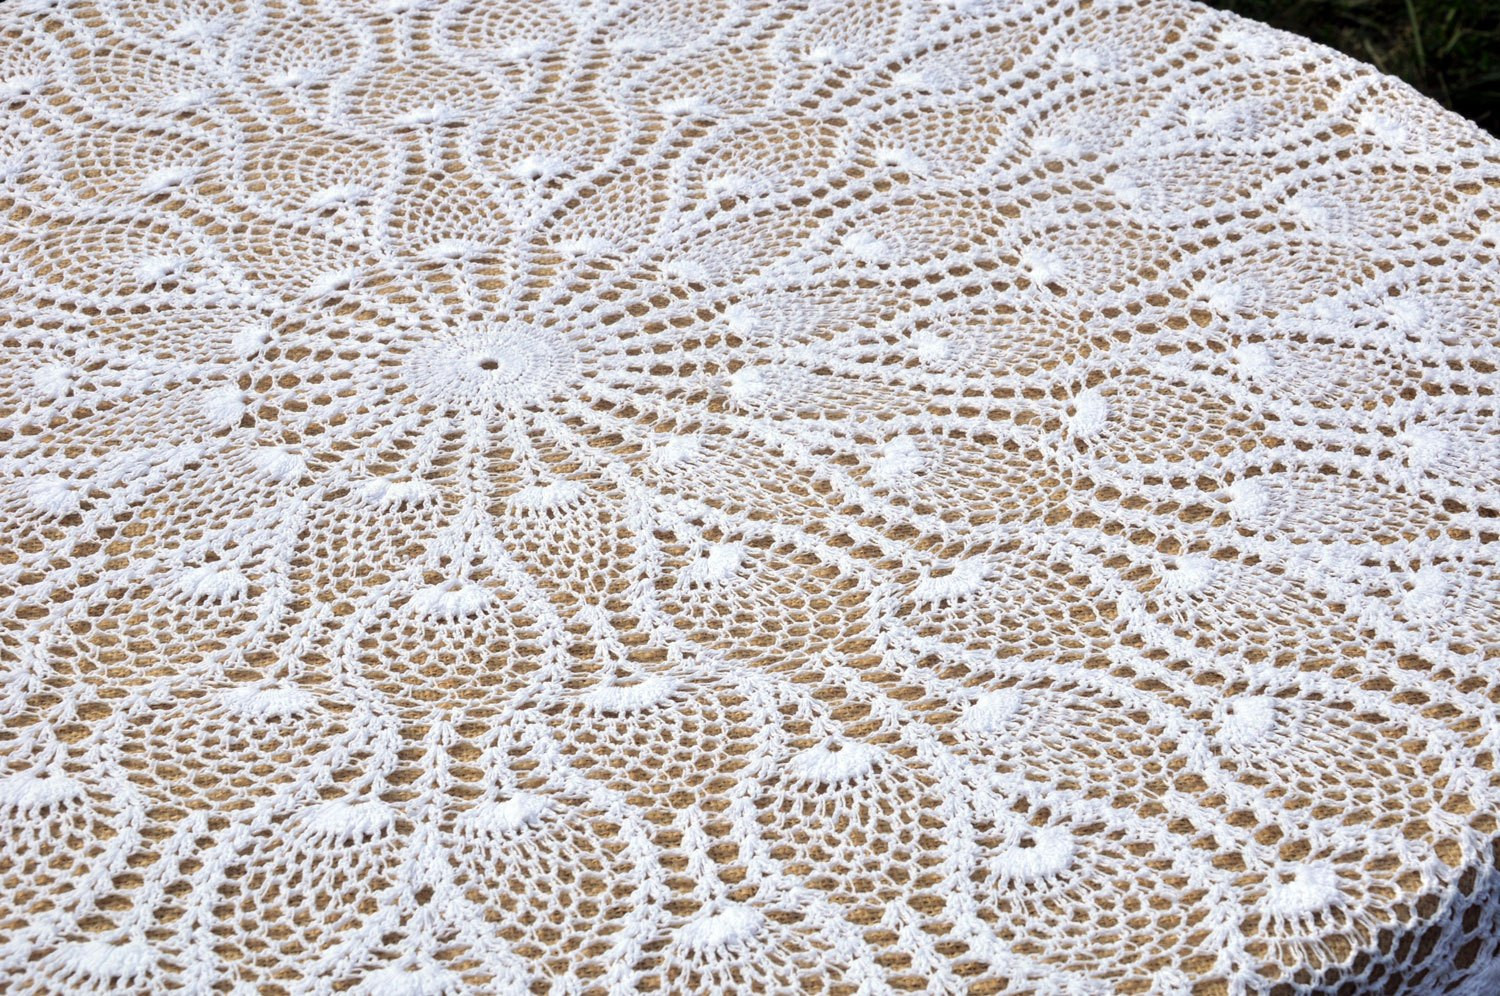 Crochet Round Tablecloth Pattern Free Inspirational 90 Inch Round Lace Crochet Tablecloth something Vintage Of Incredible 48 Pictures Crochet Round Tablecloth Pattern Free